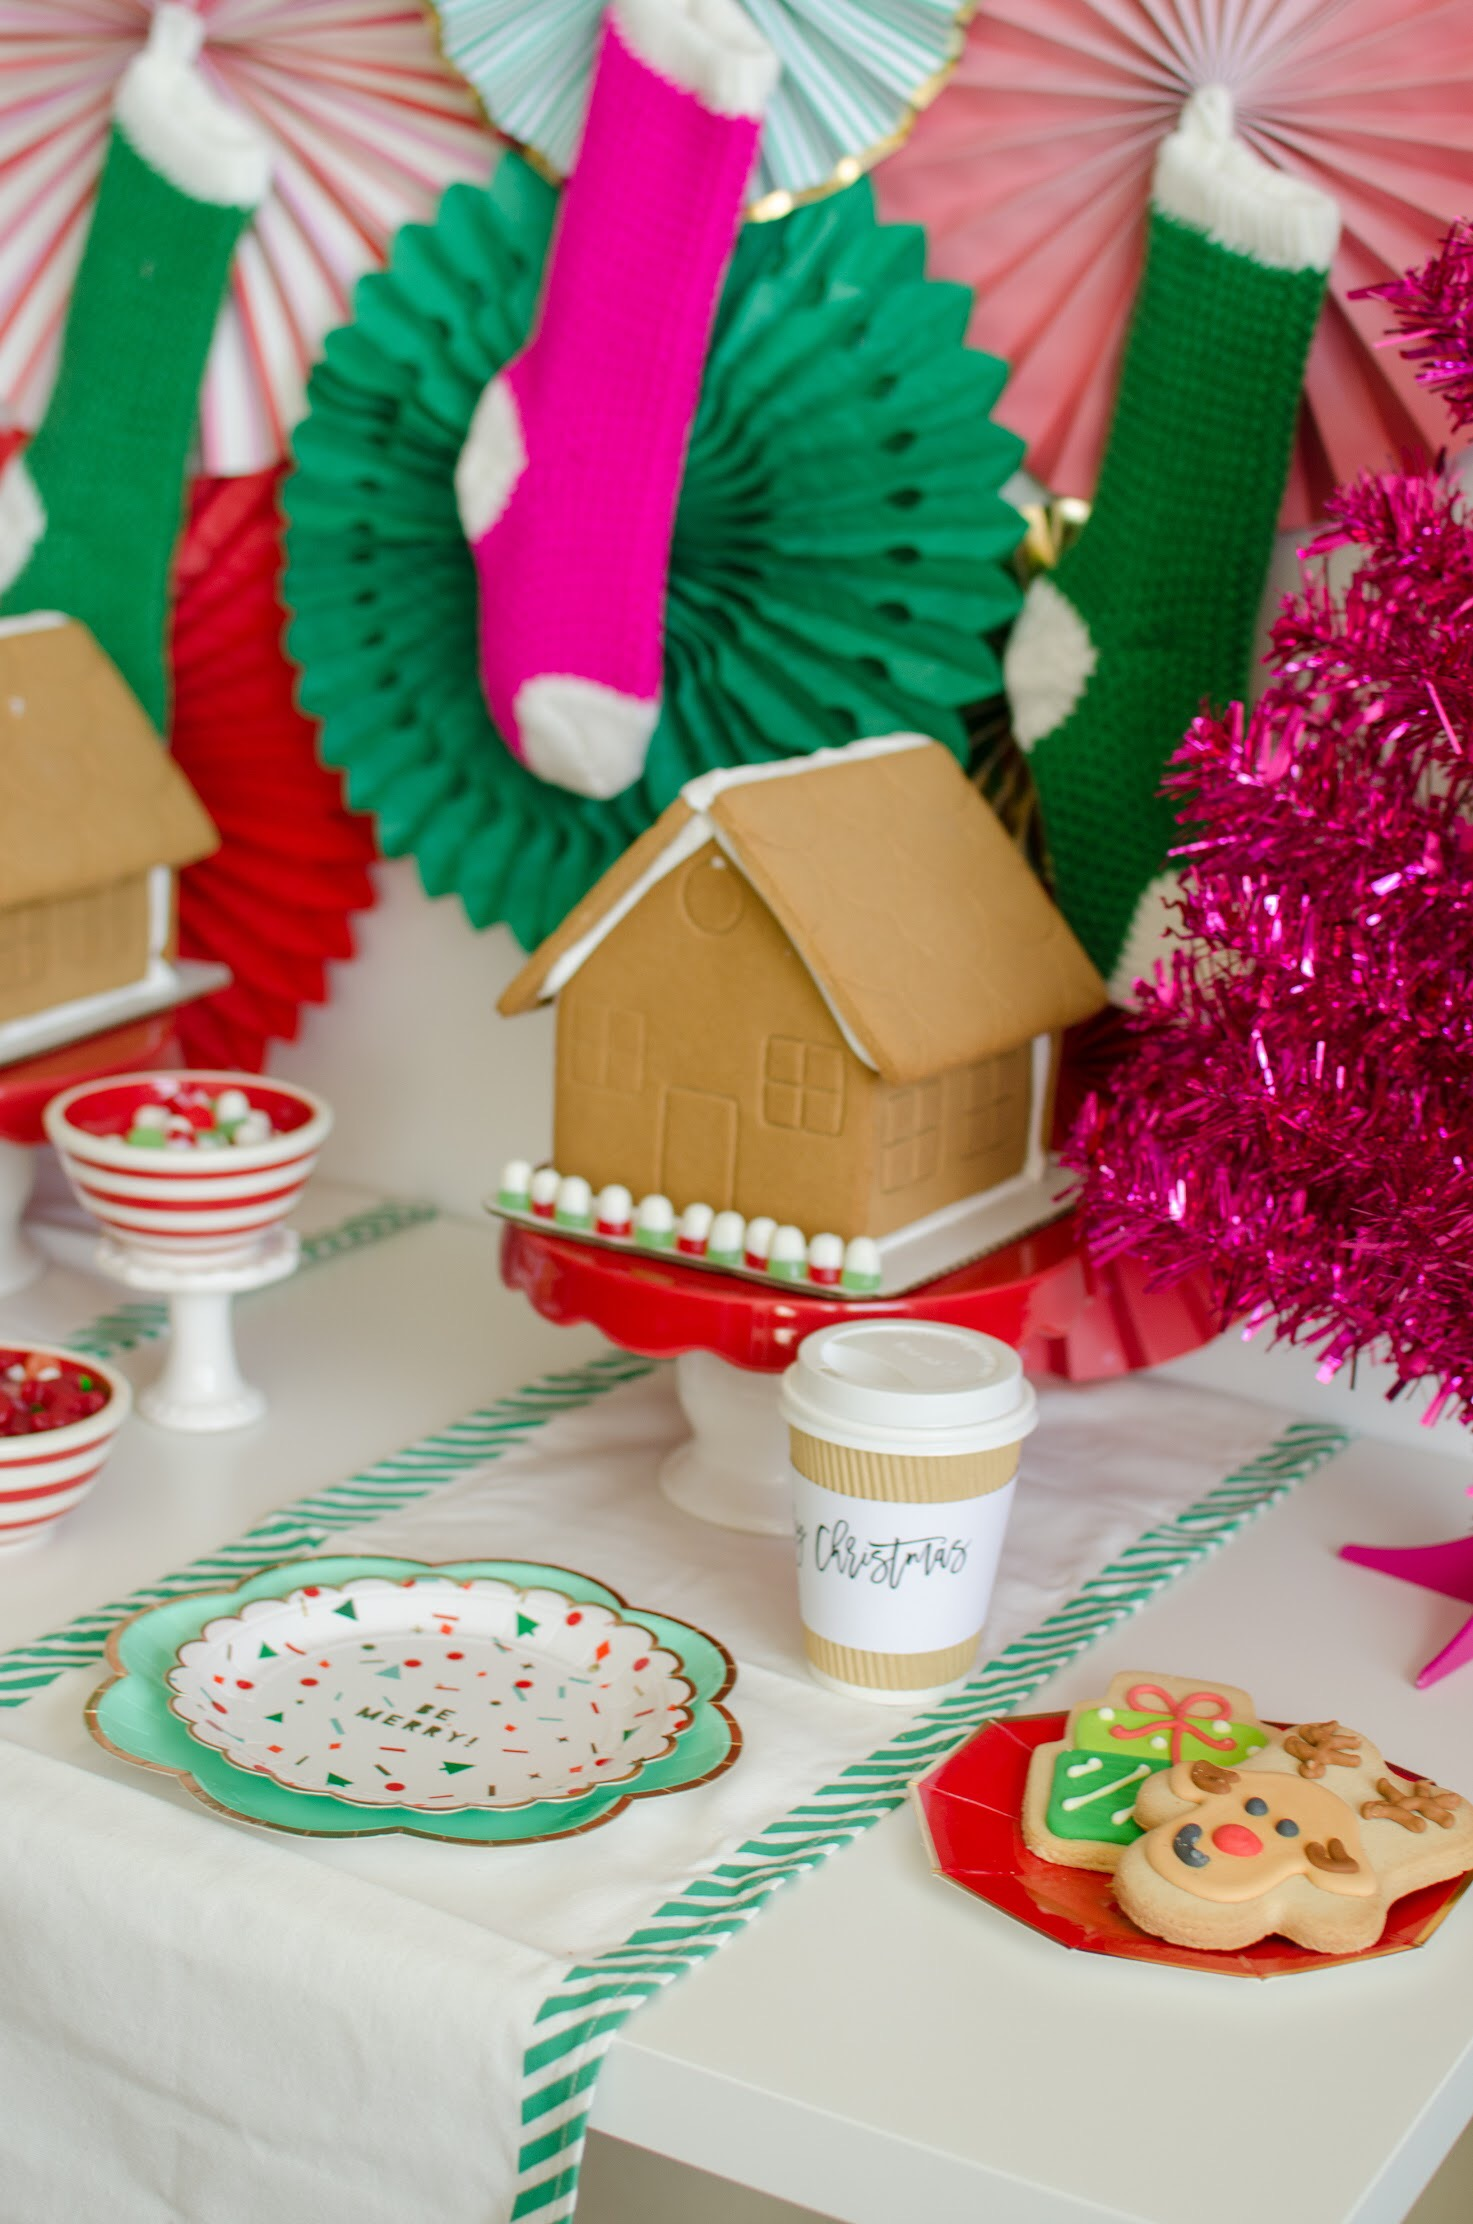 These beautifully decorated sugar cookies are the perfect addition to this gingerbread party. See the full decorating details and party set up design on Mint Event Design www.minteventdesign.com #gingerbreadhouse #holidayparty #holidays #partyideas #christmasparty #holidaypartyideas #kidsparty #christmascookies